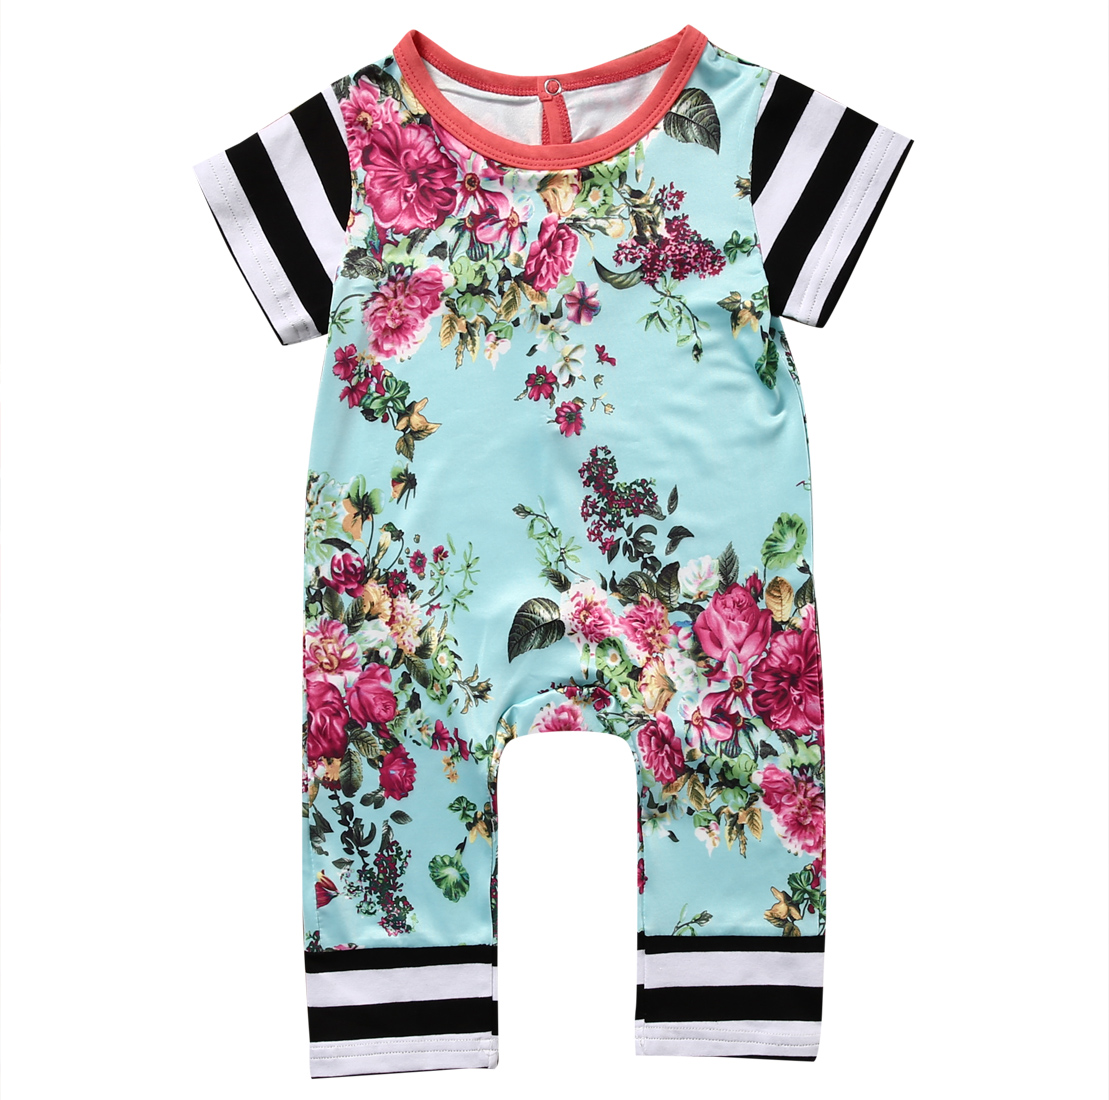 Newborn Baby Girls Boys Clothing Romper Short Sleeve Flower Cute Jumpsuit Kids Baby Girl Clothes Outfit Summer fashion 2pcs set newborn baby girls jumpsuit toddler girls flower pattern outfit clothes romper bodysuit pants